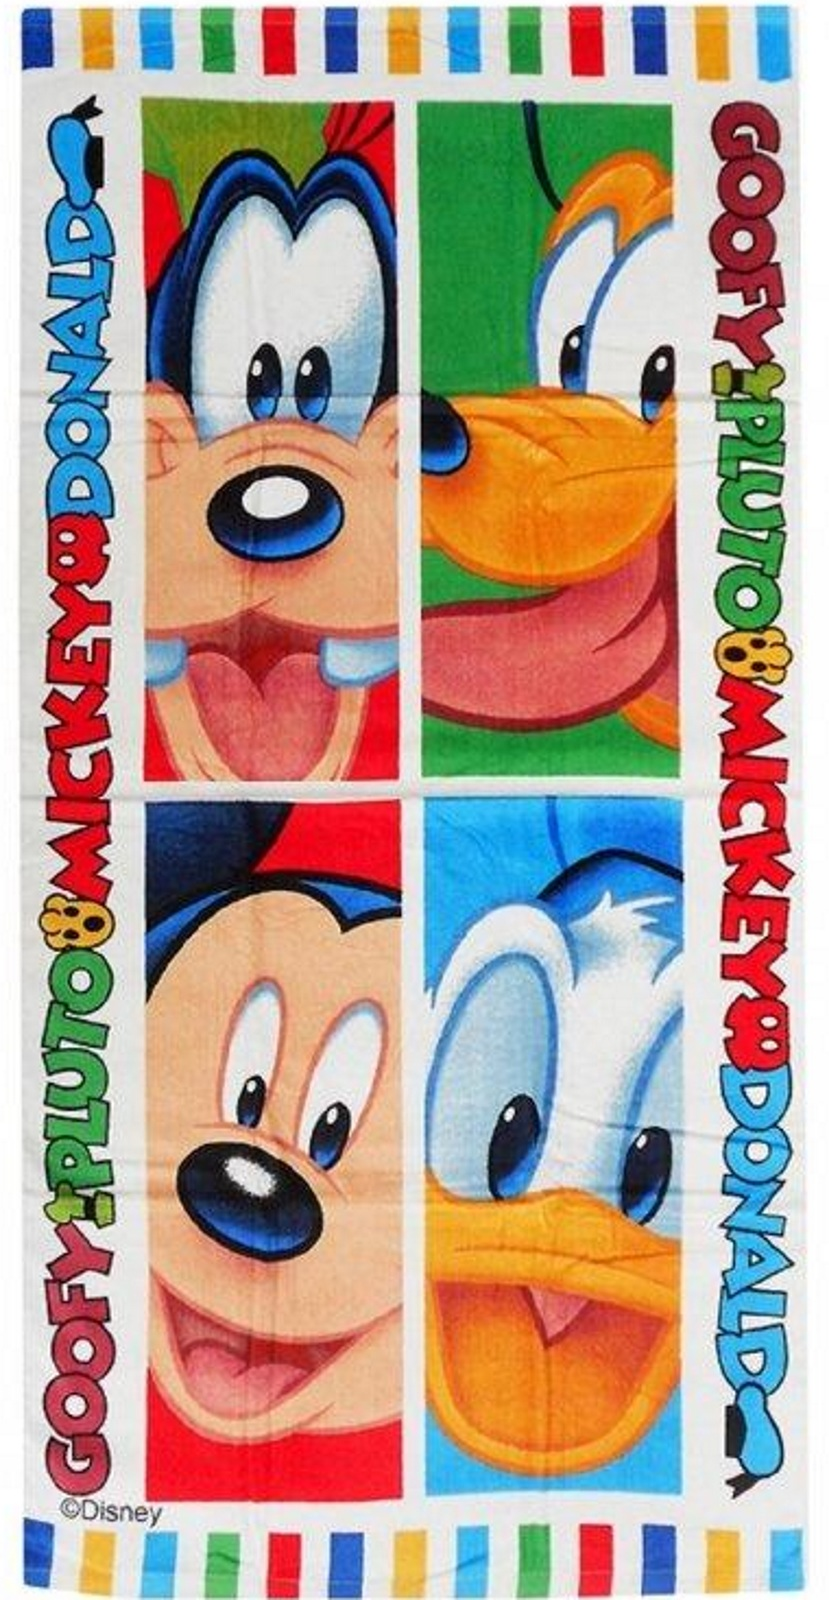 disney mickey mouse maison de jeux goofy serviette de bain de plage coton ebay. Black Bedroom Furniture Sets. Home Design Ideas